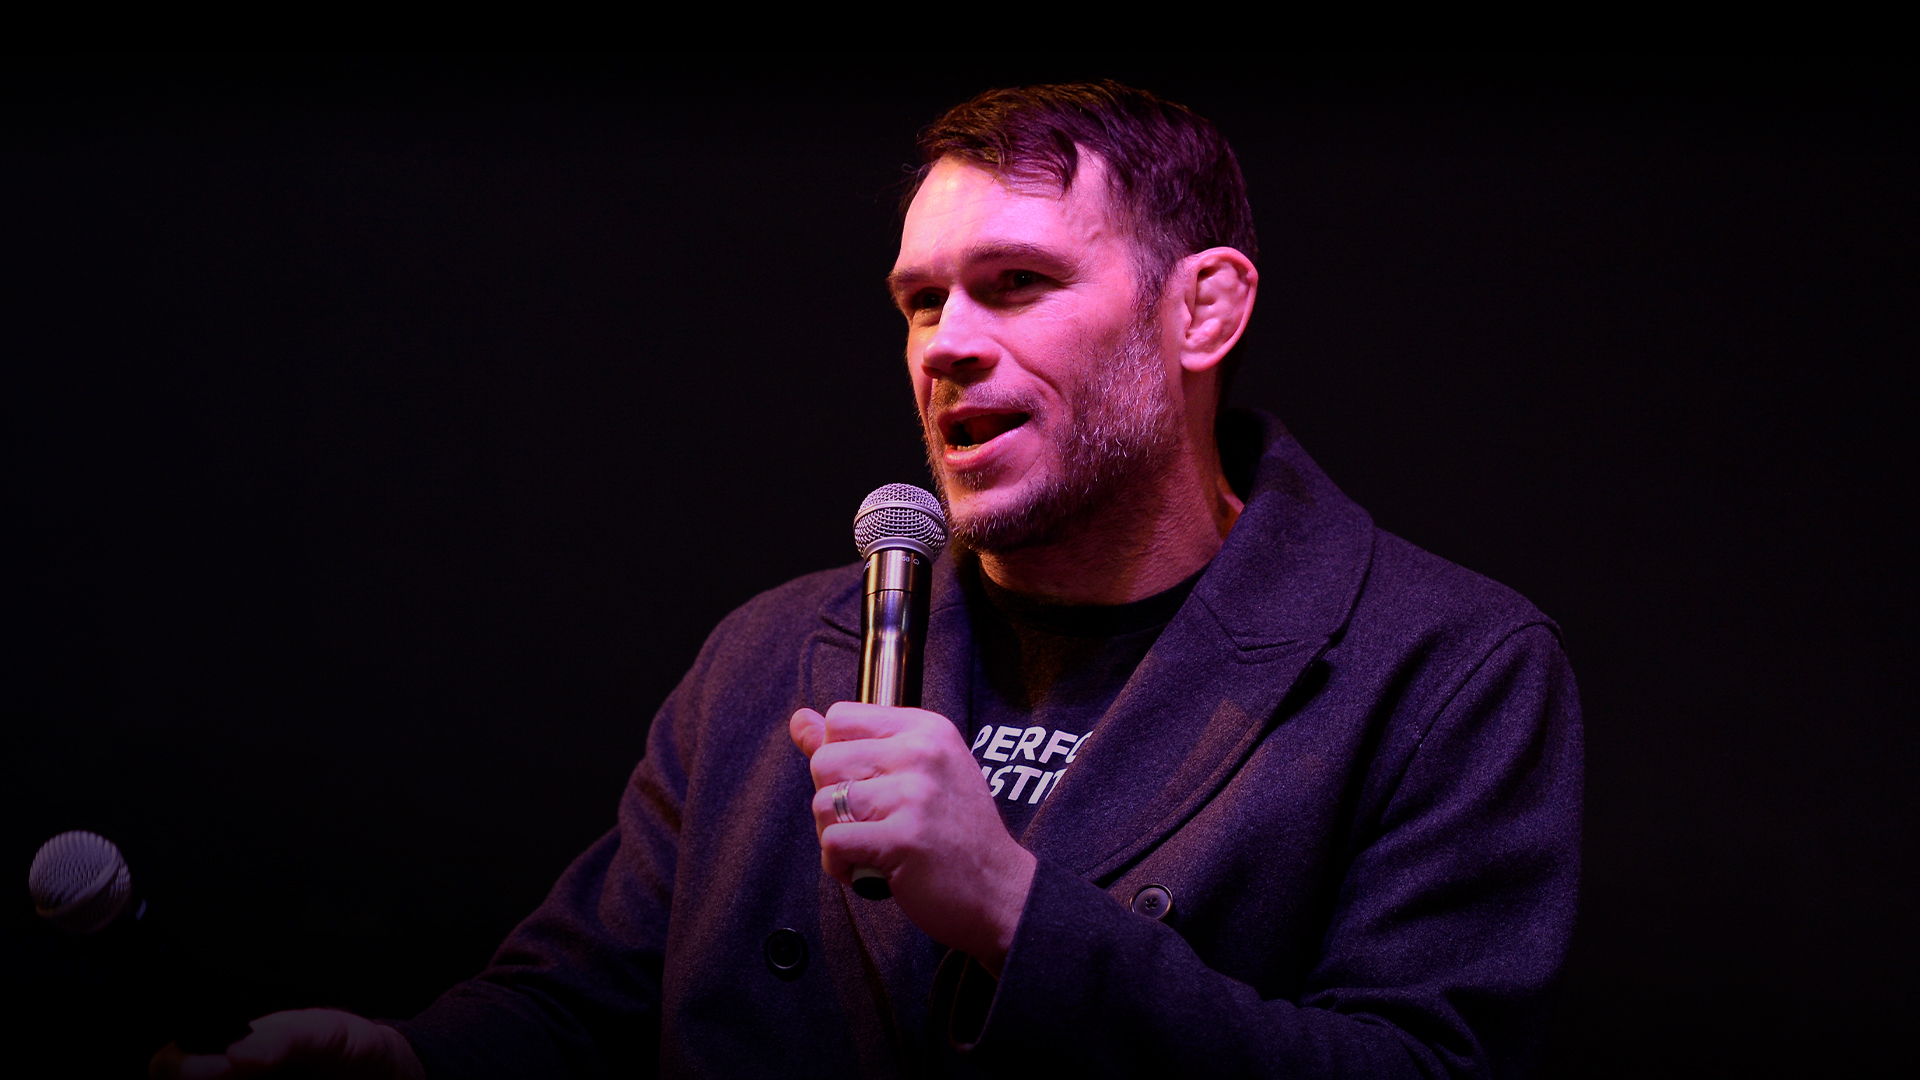 UFC Hall of Famer Forrest Griffin speaks to the media during the Ultimate Sports Weekend Pep Rally at Toshiba Plaza on February 28, 2018 in Las Vegas, Nevada. (Photo by Brandon Magnus/Zuffa LLC)